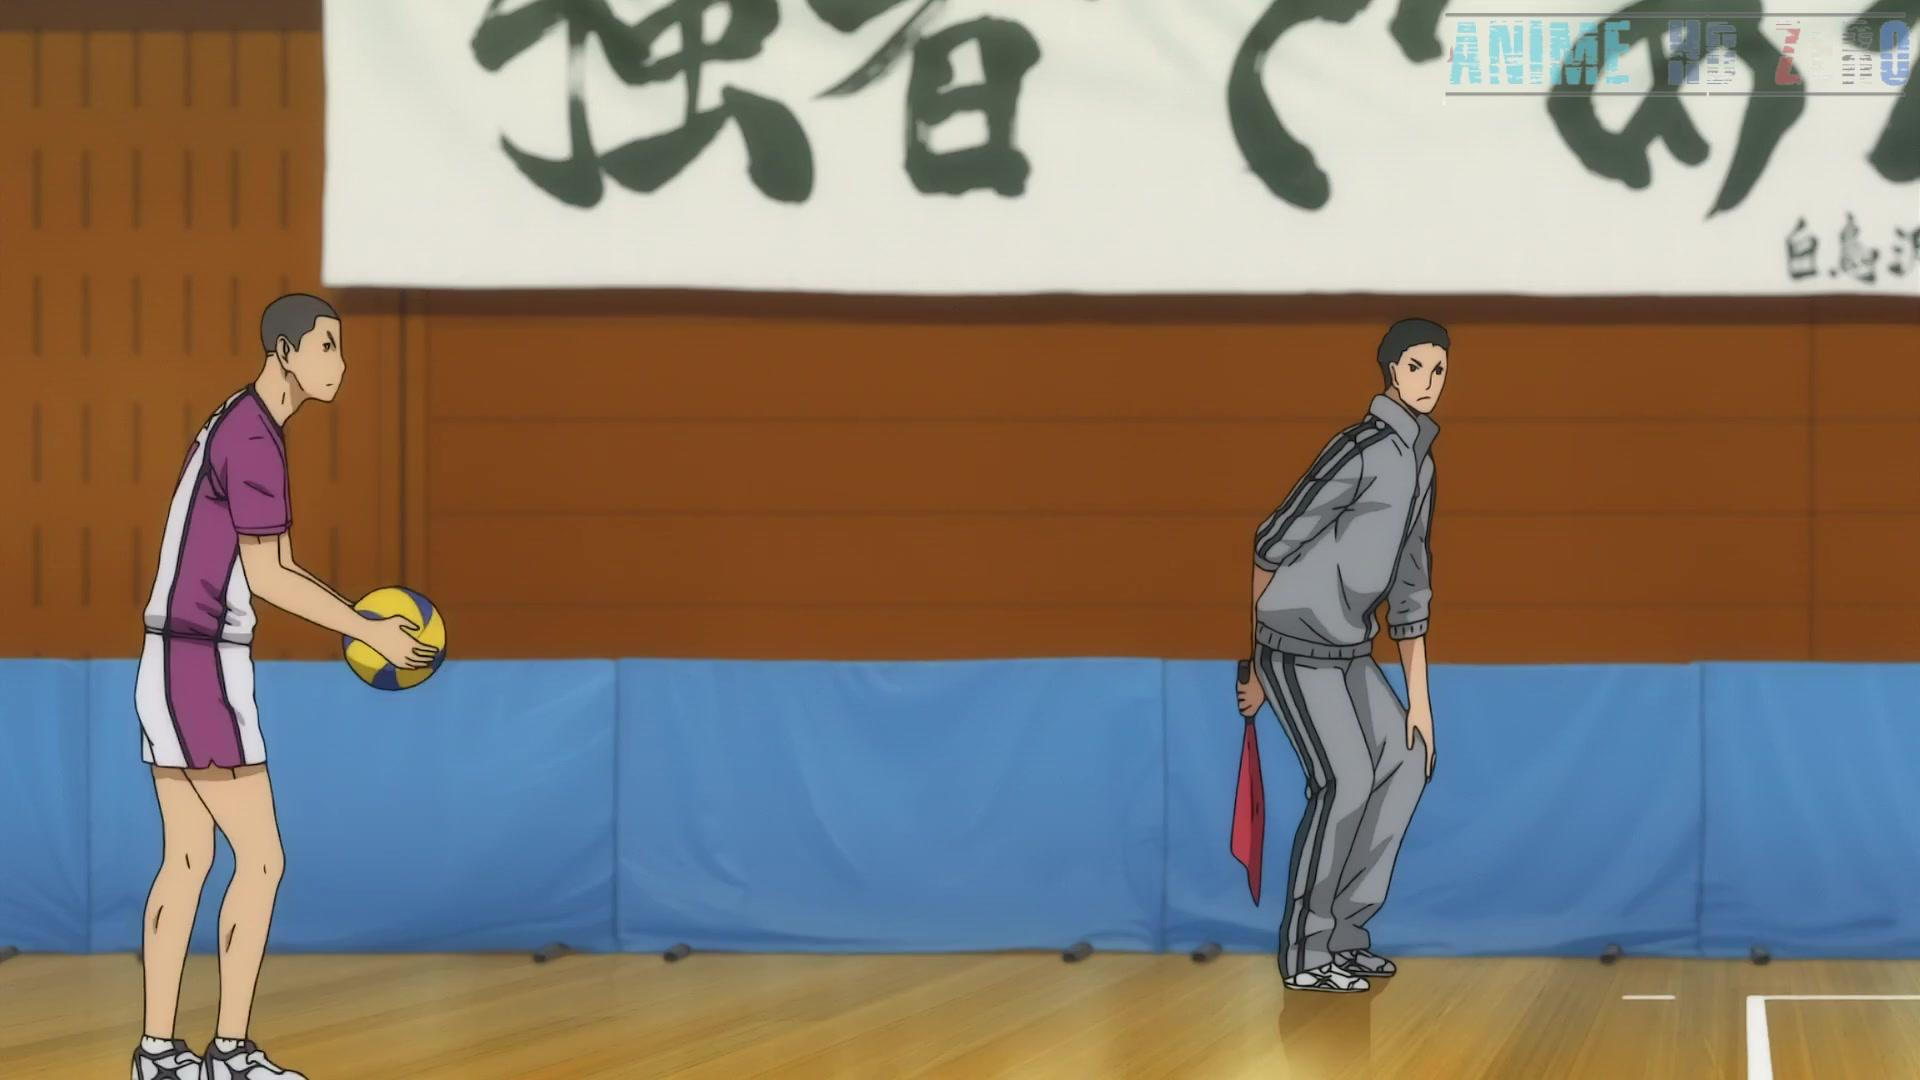 Haikyuu!! Karasuno High School vs. Shiratorizawa Academy